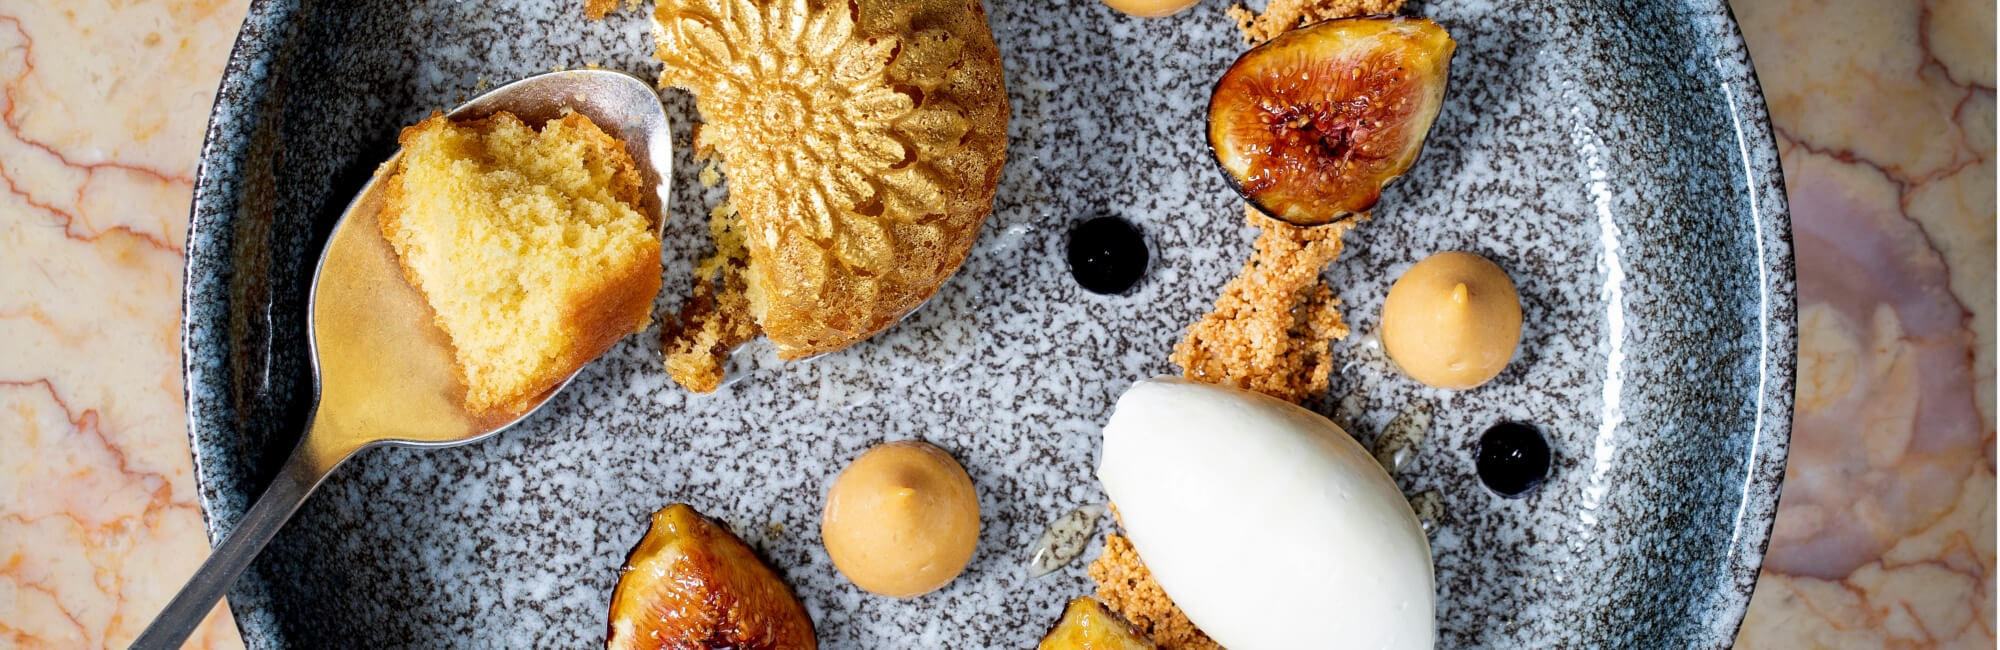 J Sheekey Atlantic Bar | Honey Cake with Black Figs